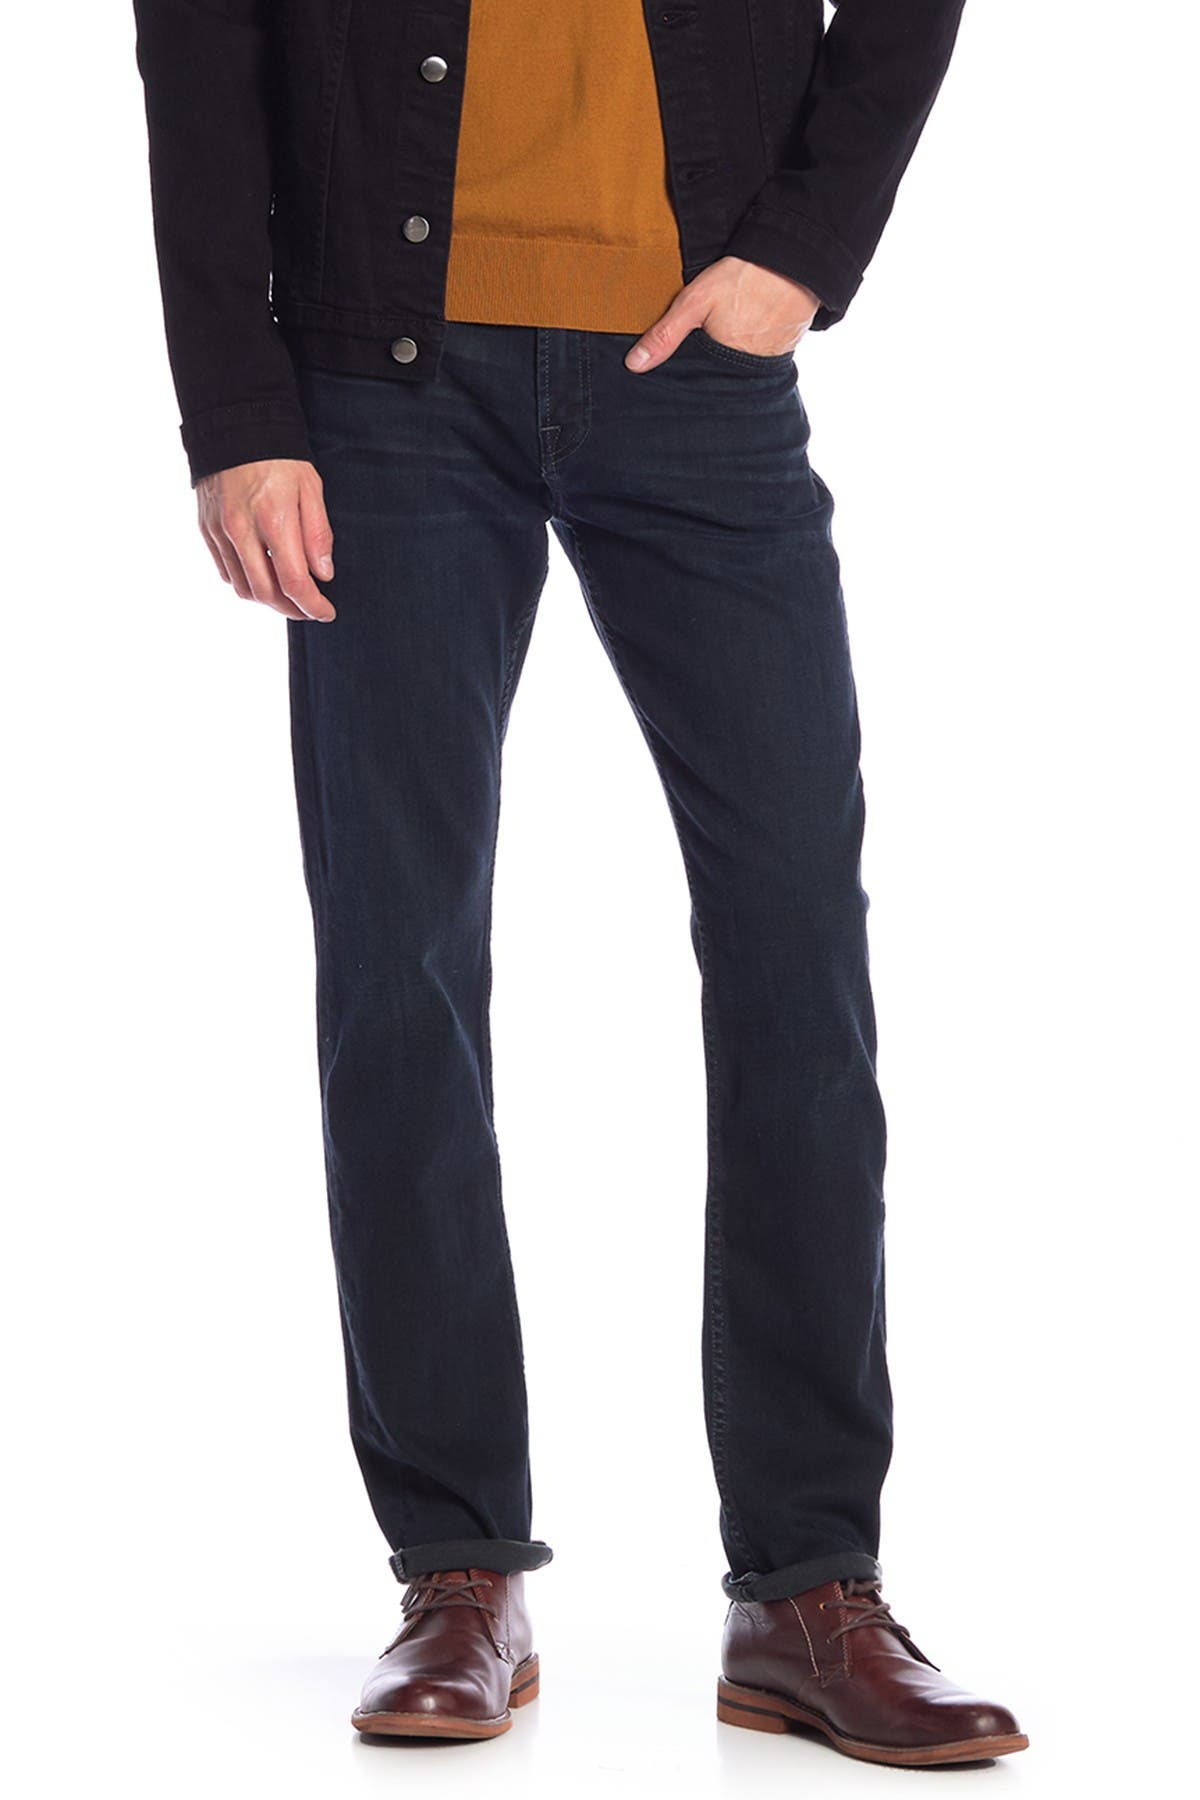 Image of 7 For All Mankind Slimmy Slim Straight Jeans